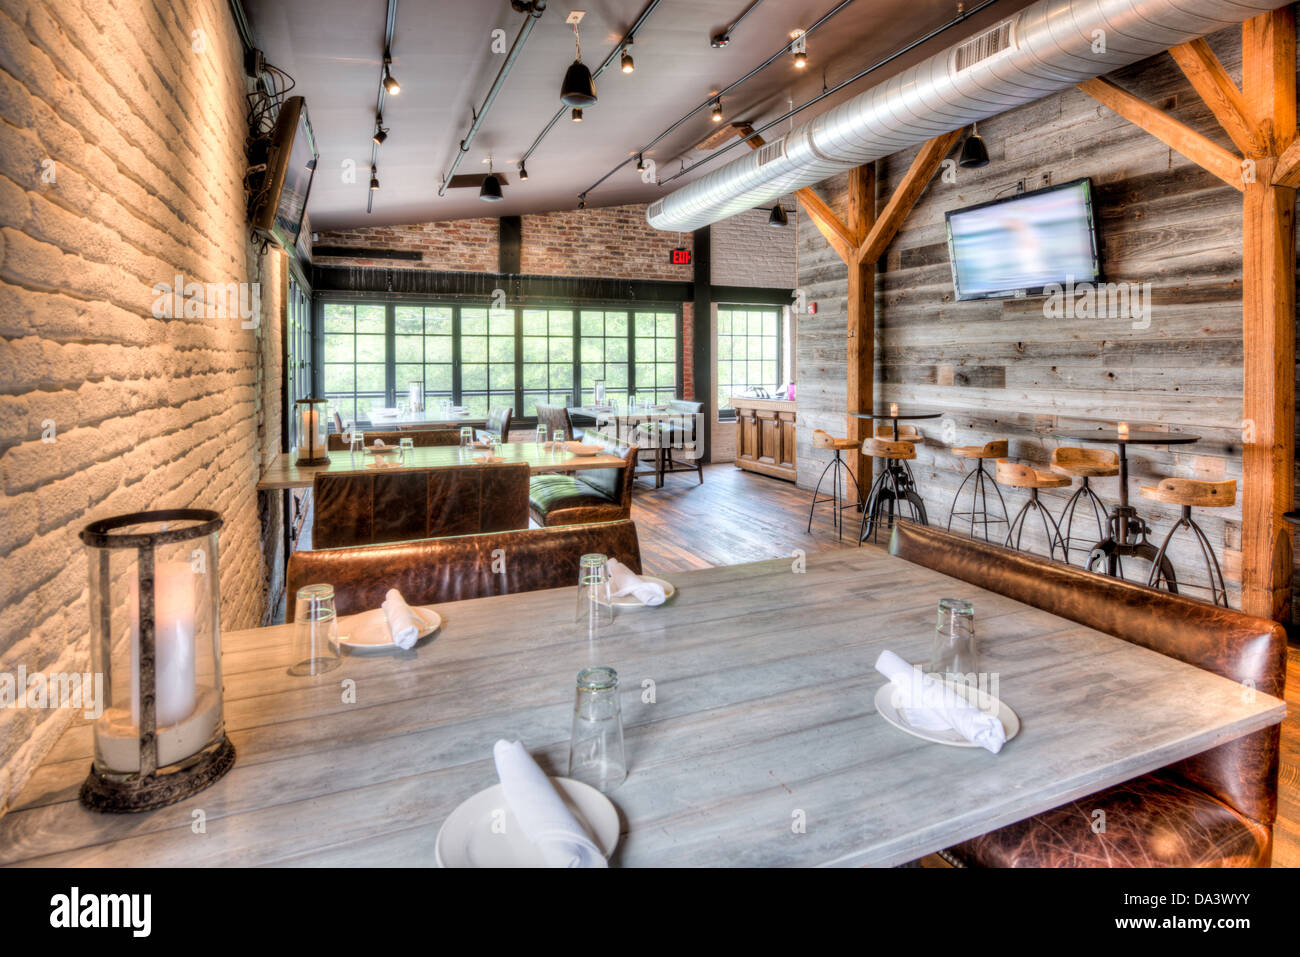 The Interior Of Virtue Feed And Grain A Restaurant And Tavern In Old Stock Photo Royalty Free